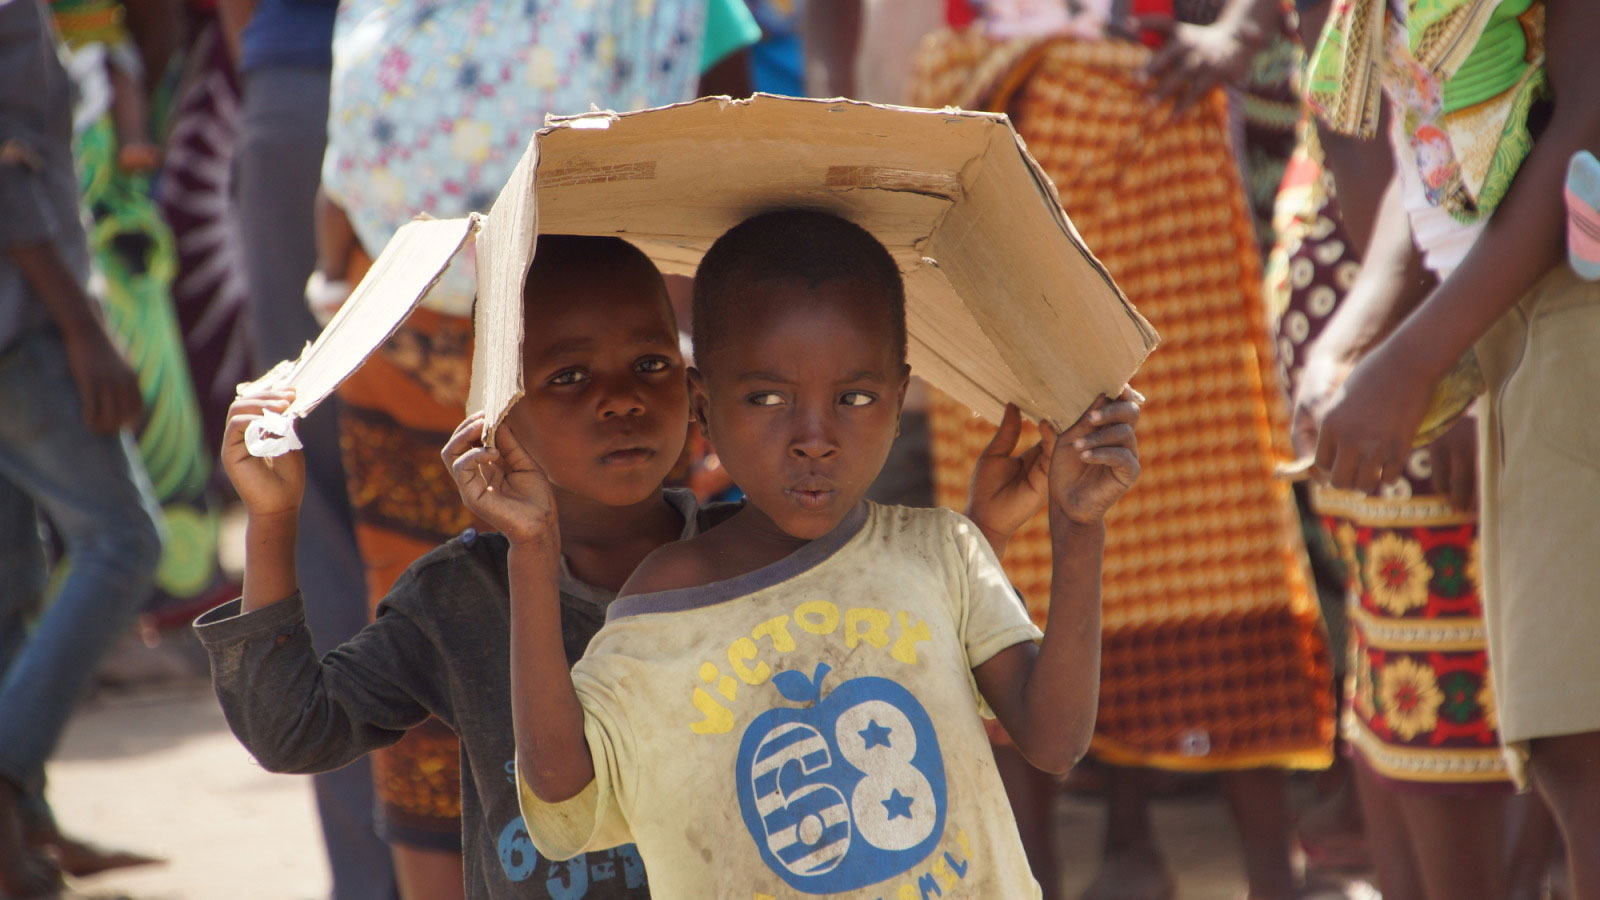 Two-young-boys-carrying-a-piece-of-cardbox-over-their-heads-in-Mozambique-following-Cyclone-Idai